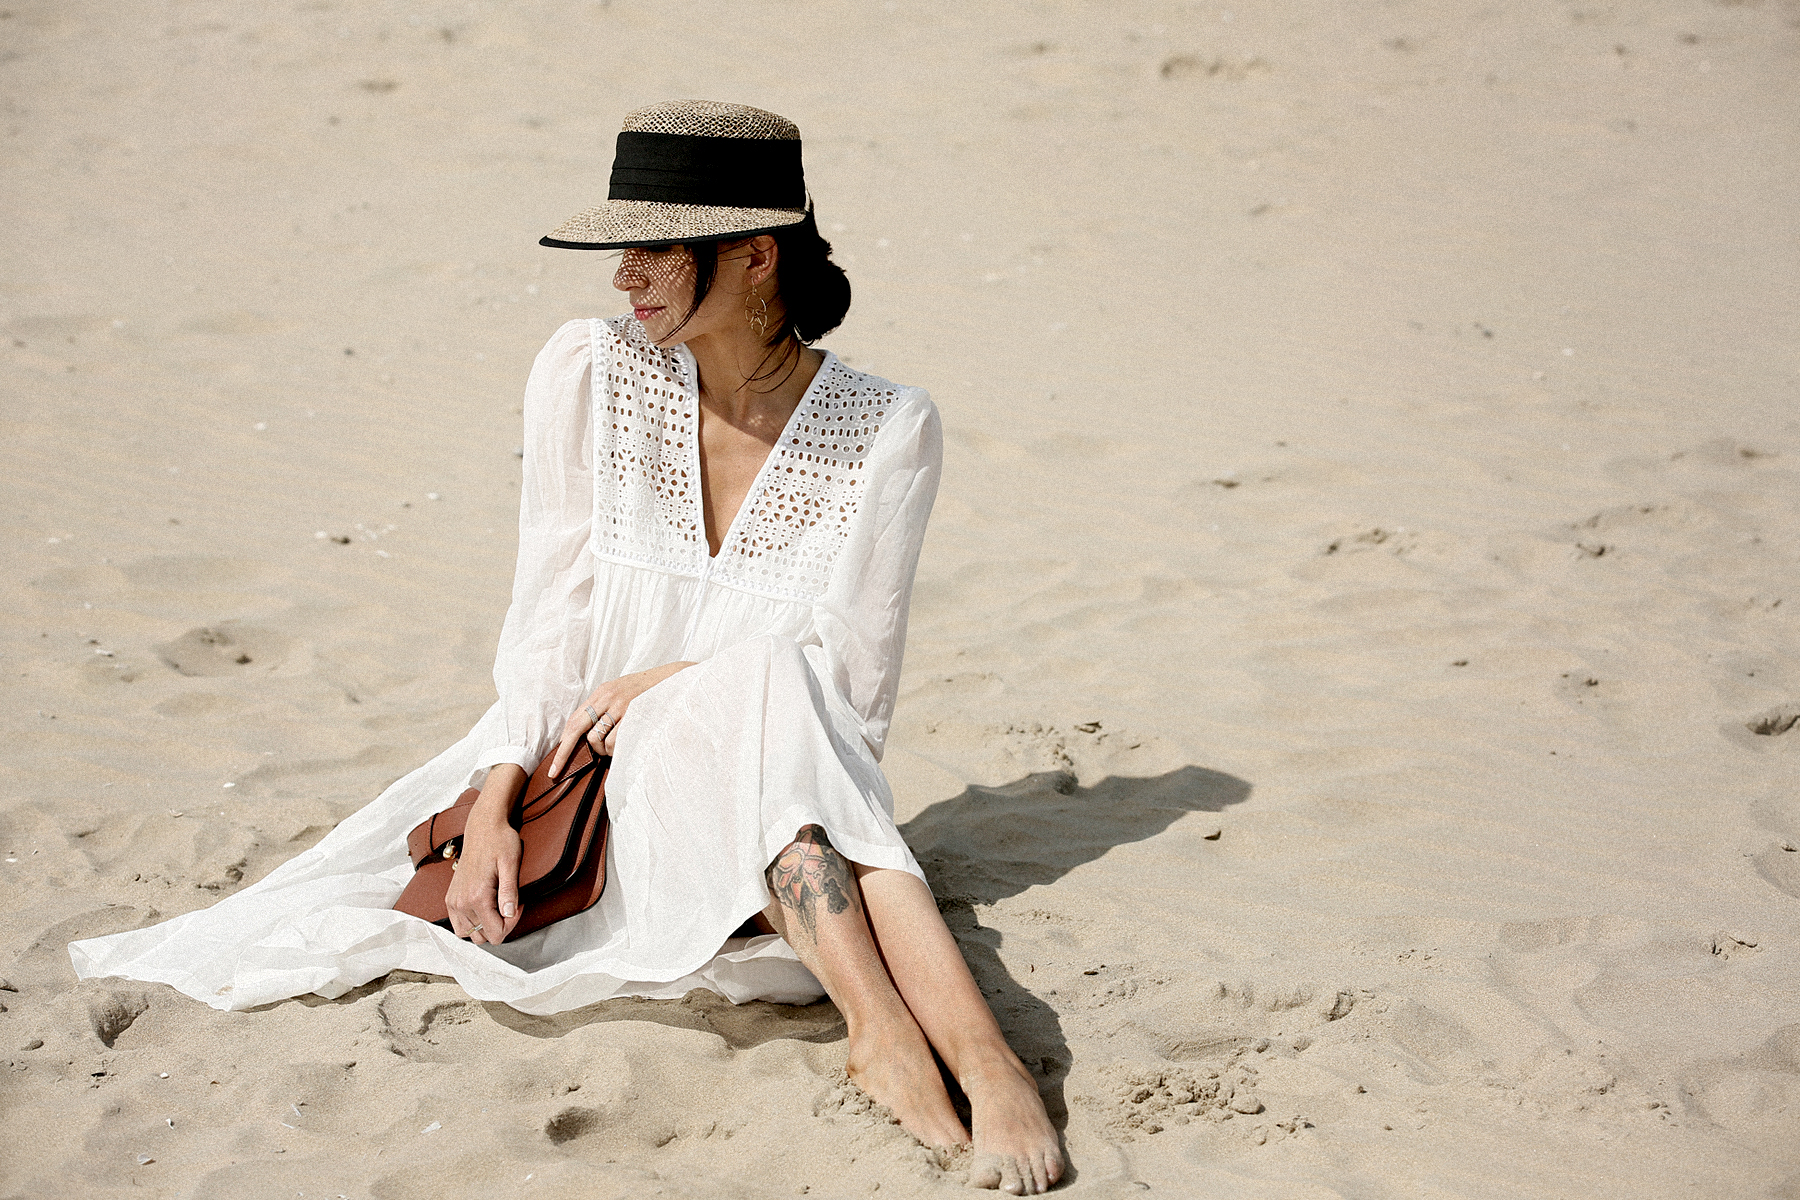 breuninger beach white dress closed j.w.anderson pierce bag straw hat summertime sunshine photography editorial vogue fashionblogger düsseldorf cats&dogs blog ricarda schernus modeblogger 4